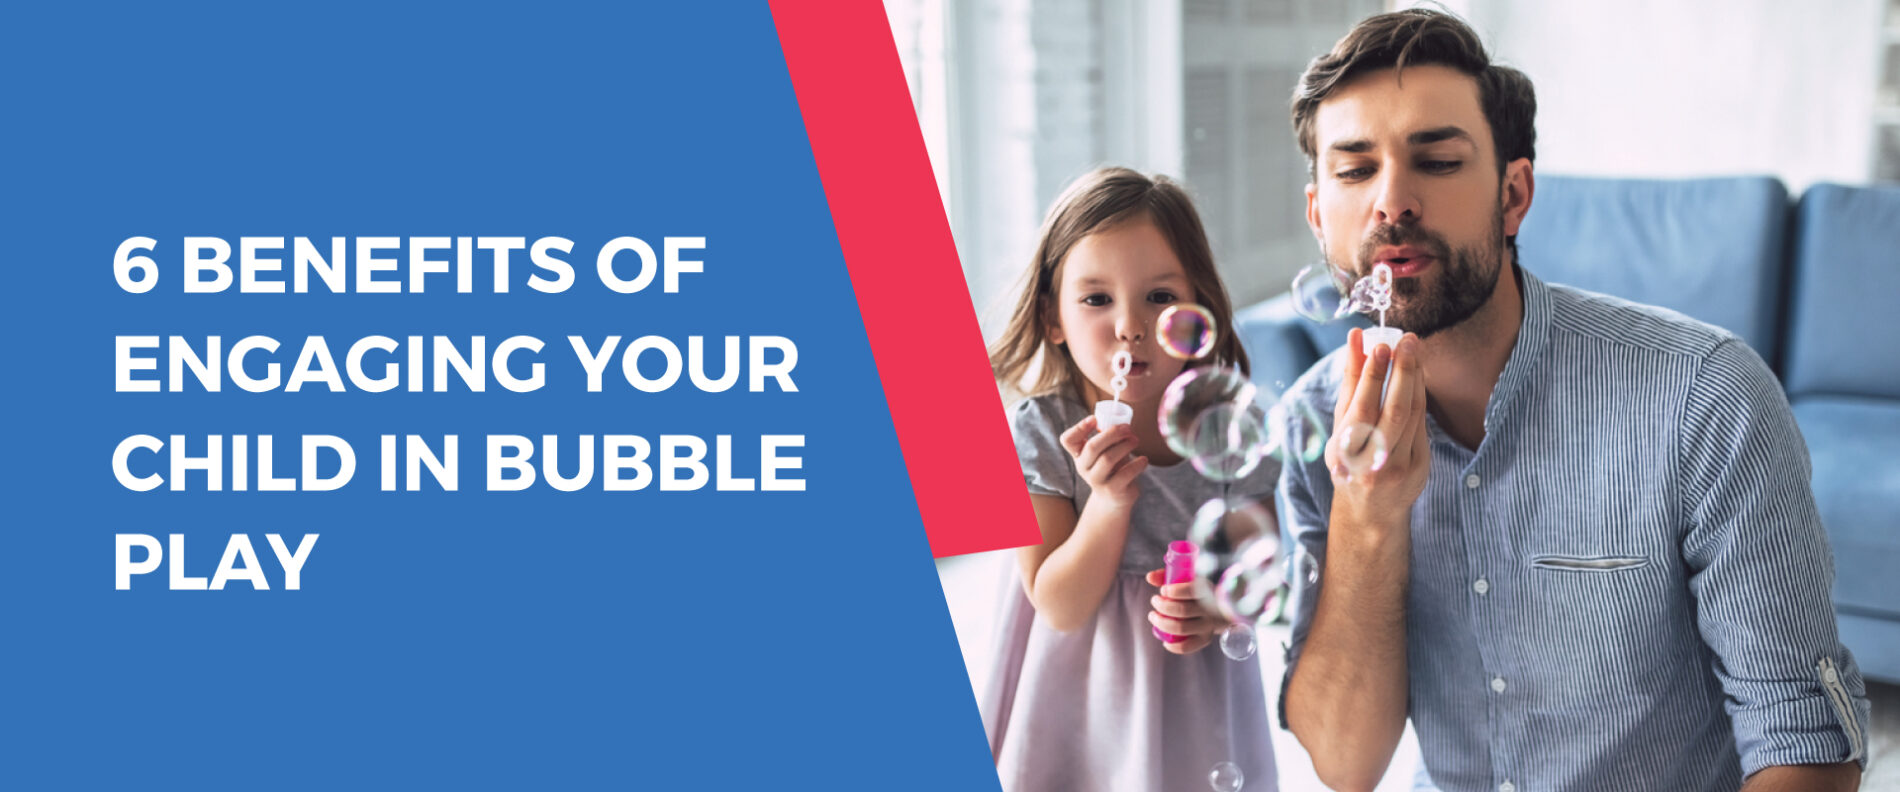 6 Benefits of Engaging your Child in Bubble Play